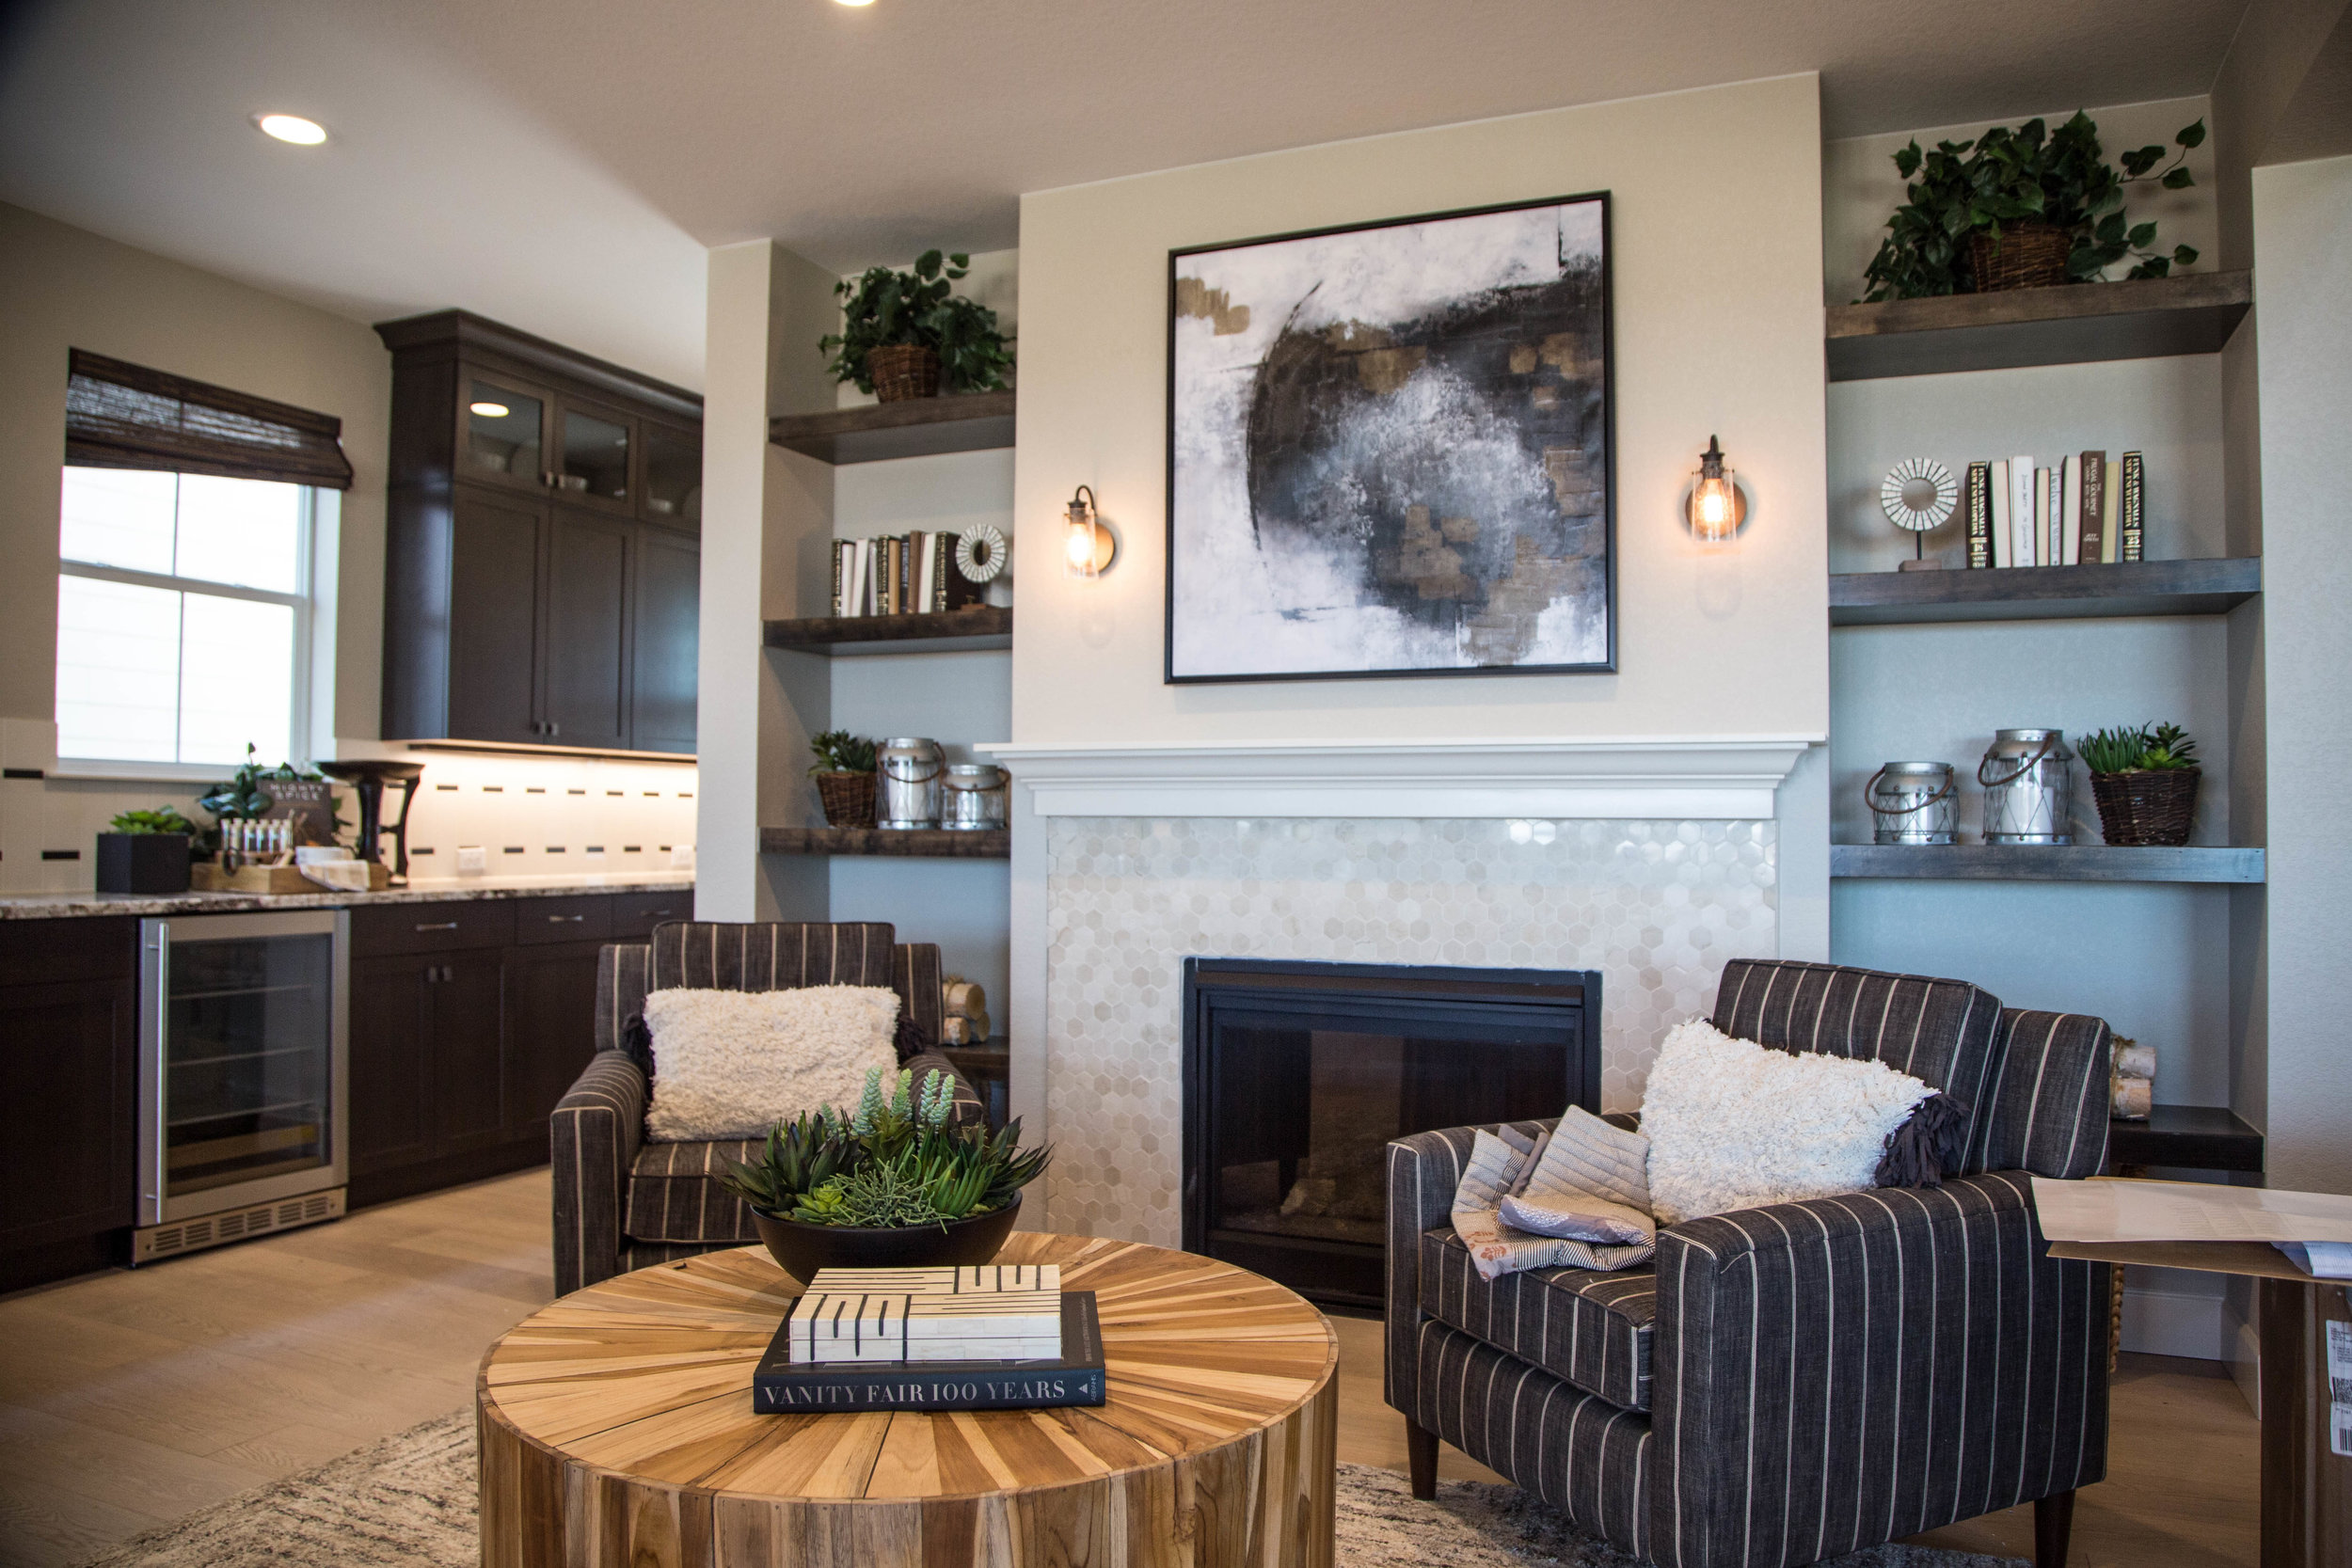 Elegant Wall Fixtures with Edison Bulbs frame this gas fireplace